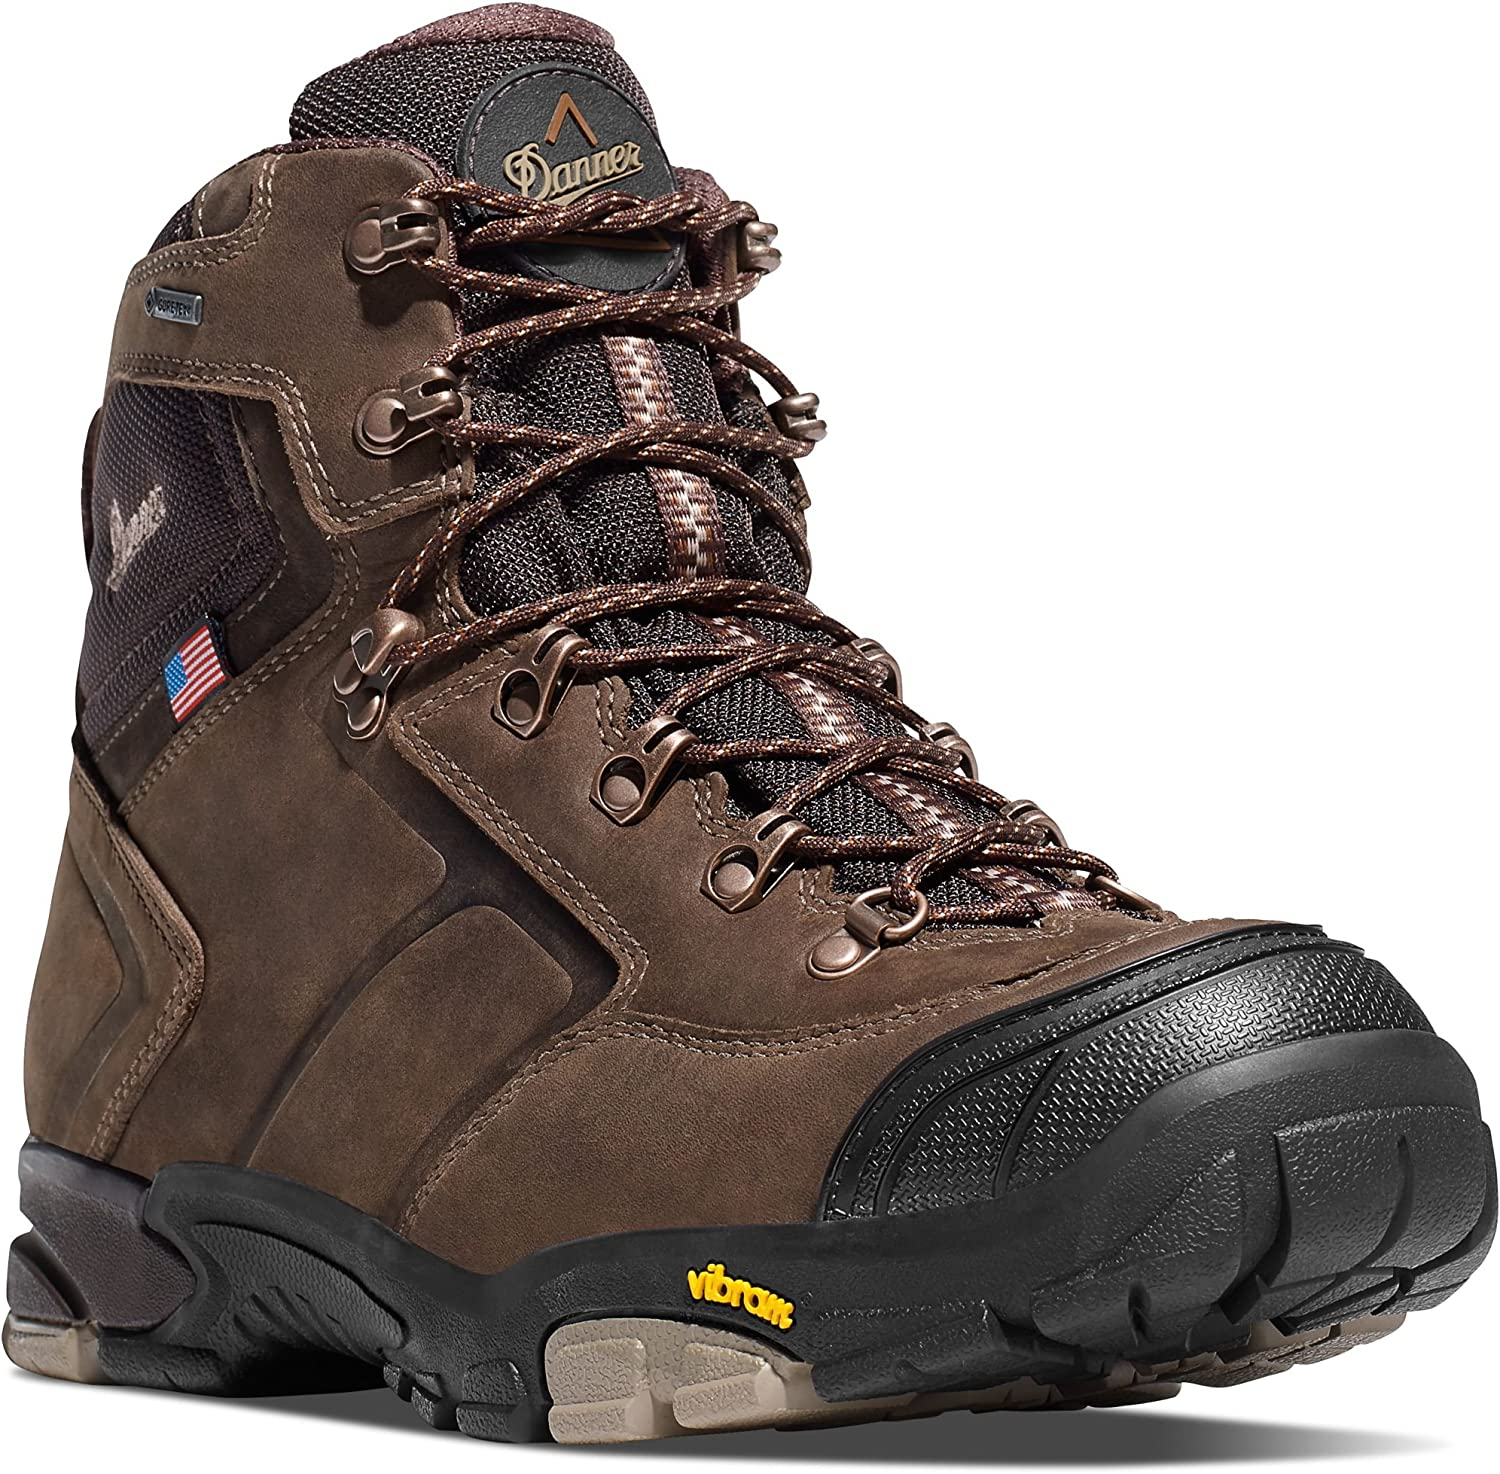 Danner MT Adams 4.5 Brown Vibram 65810 Sole Outdoor Boots Waterproof Downhill Braking and Side-Hill Traction